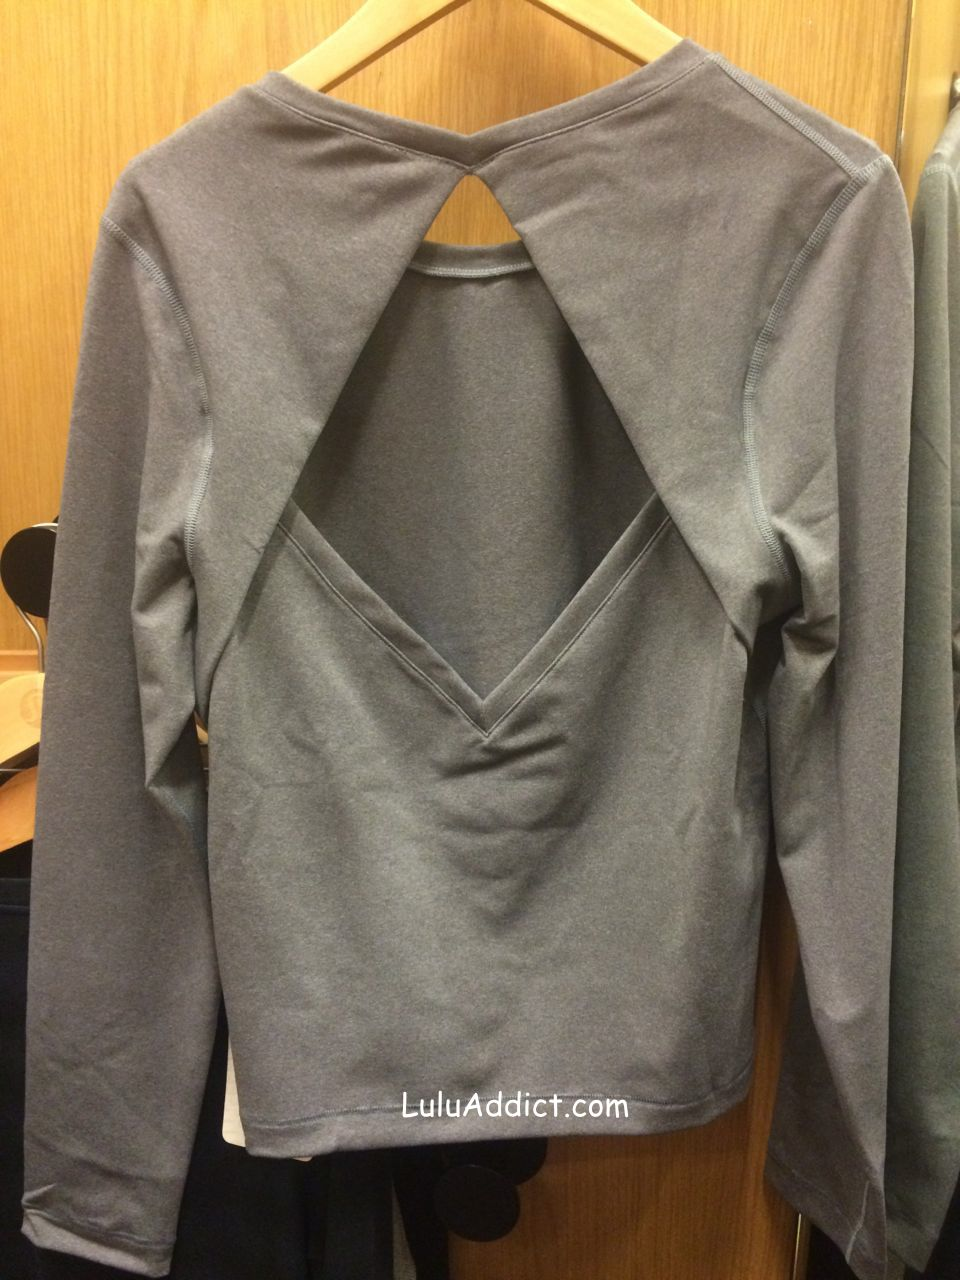 lululemon back up ls